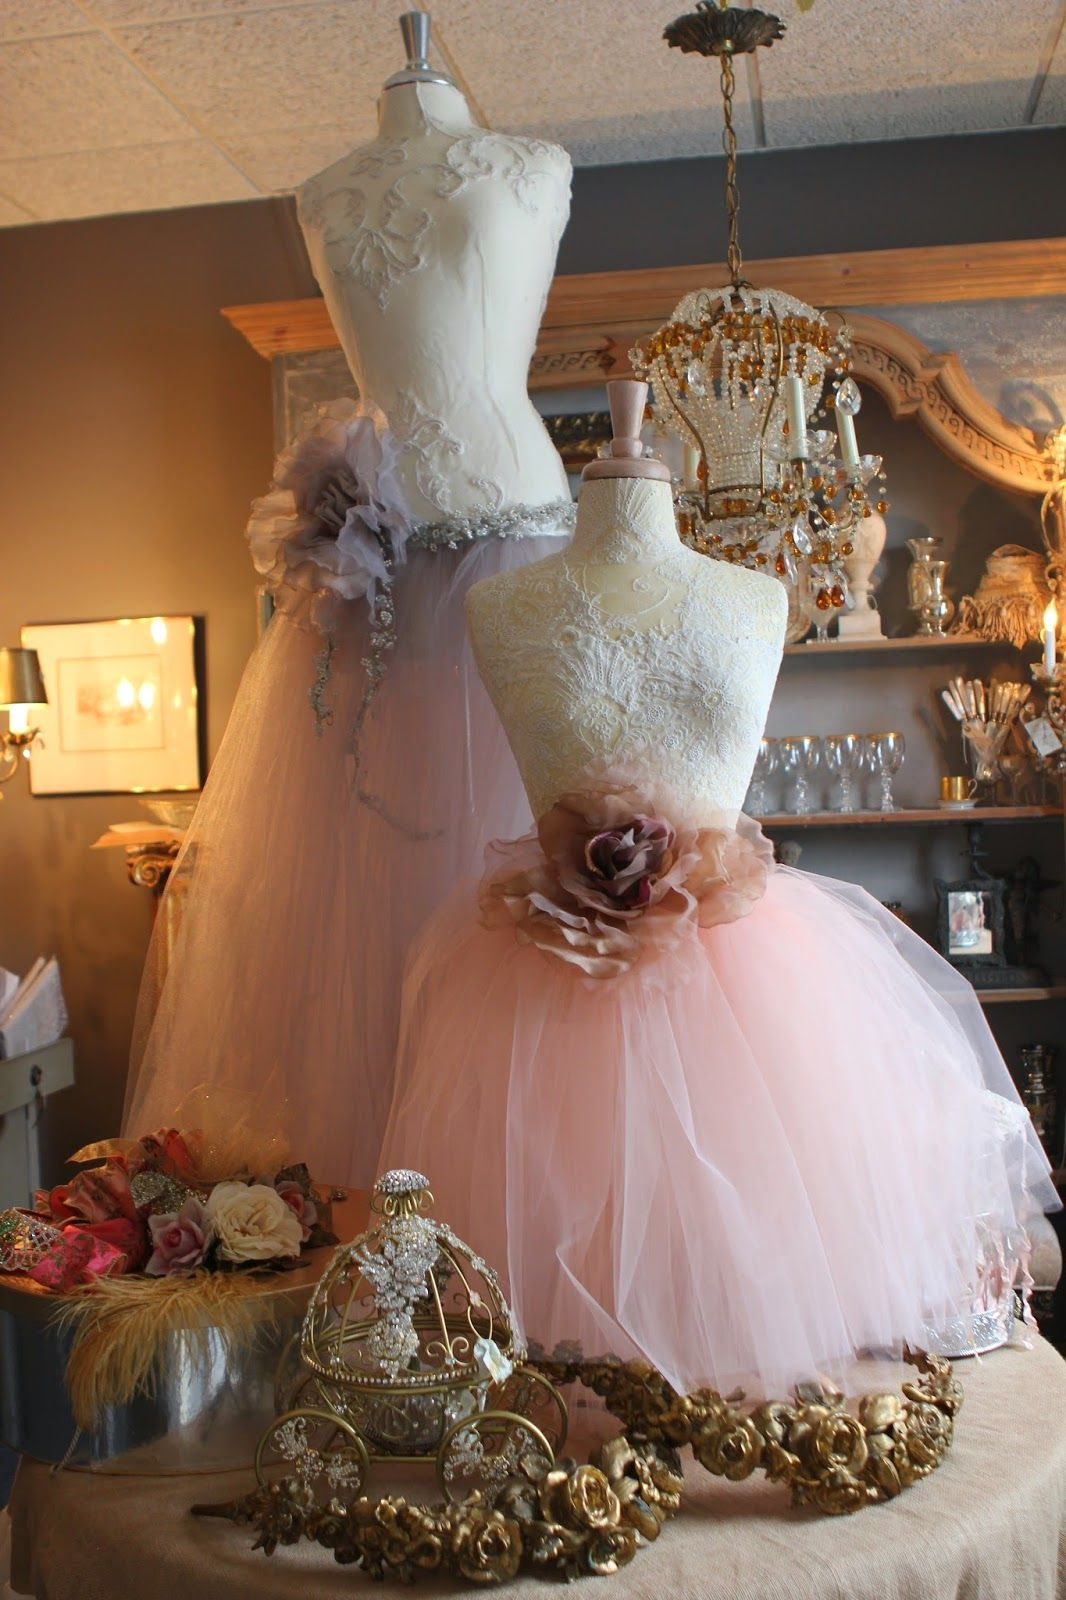 Romancing the home tiaras and tutus pop up sale manequin and